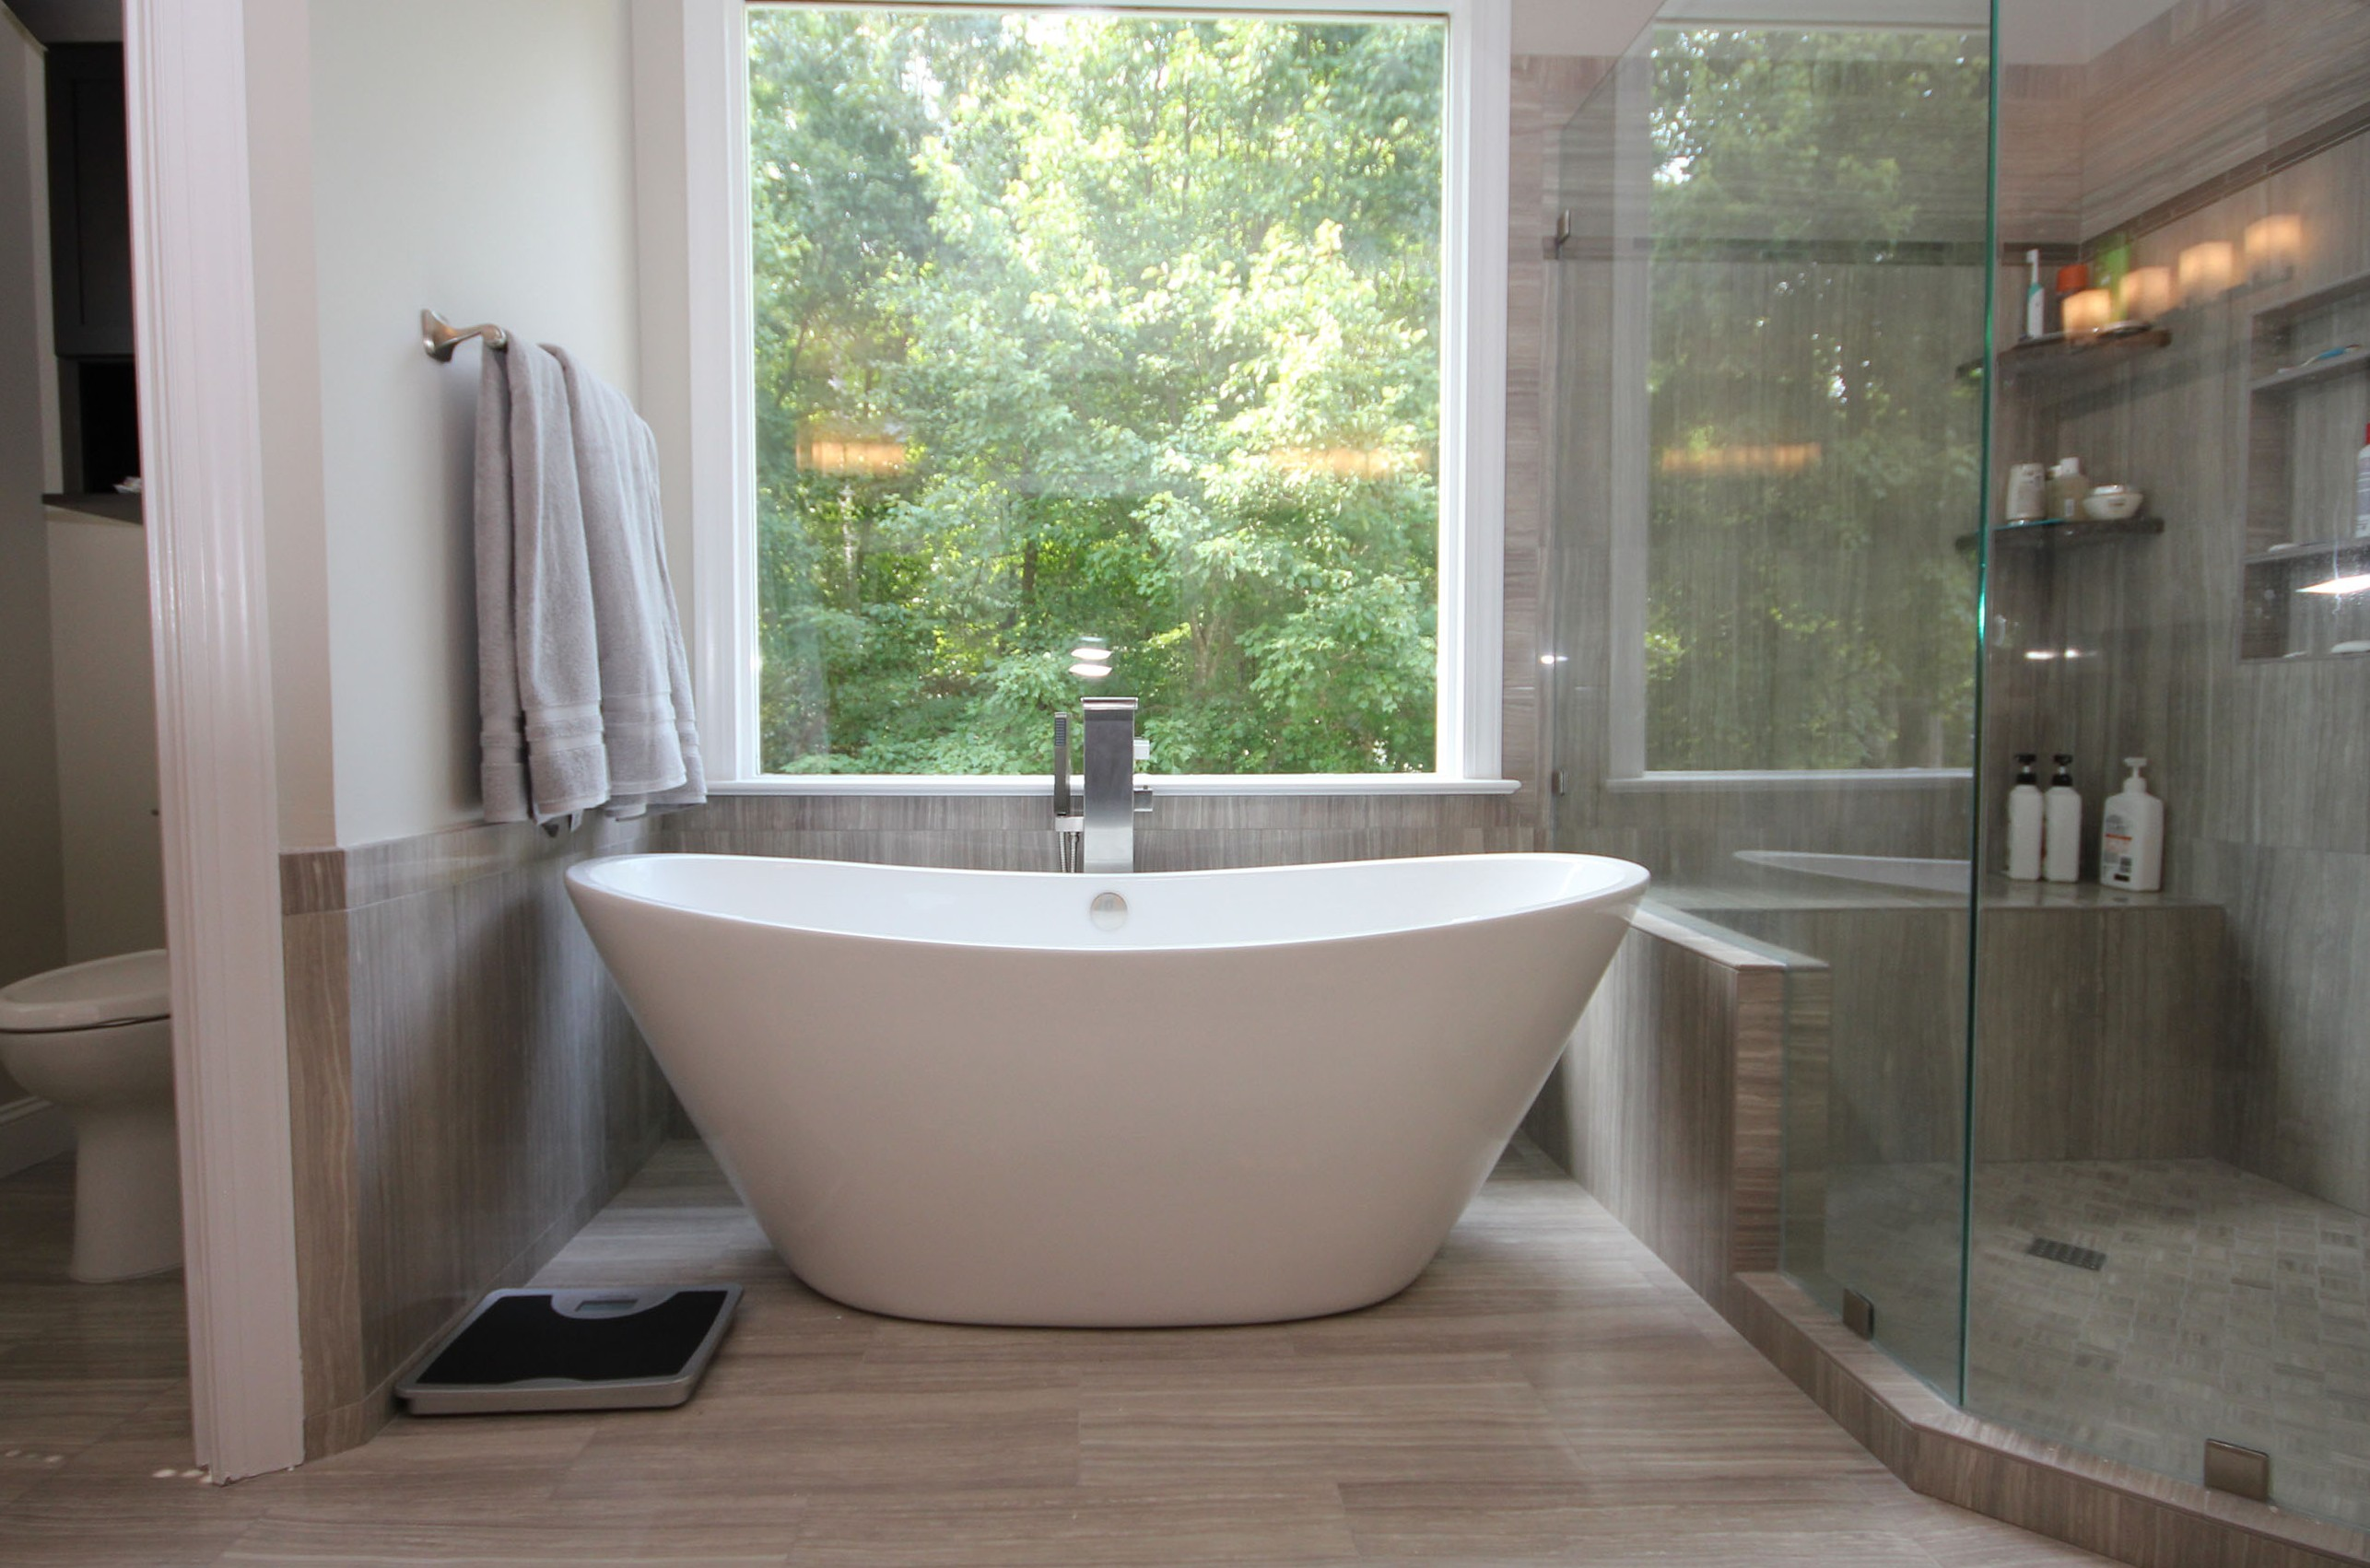 freestanding tub in raleigh bath remodel view image